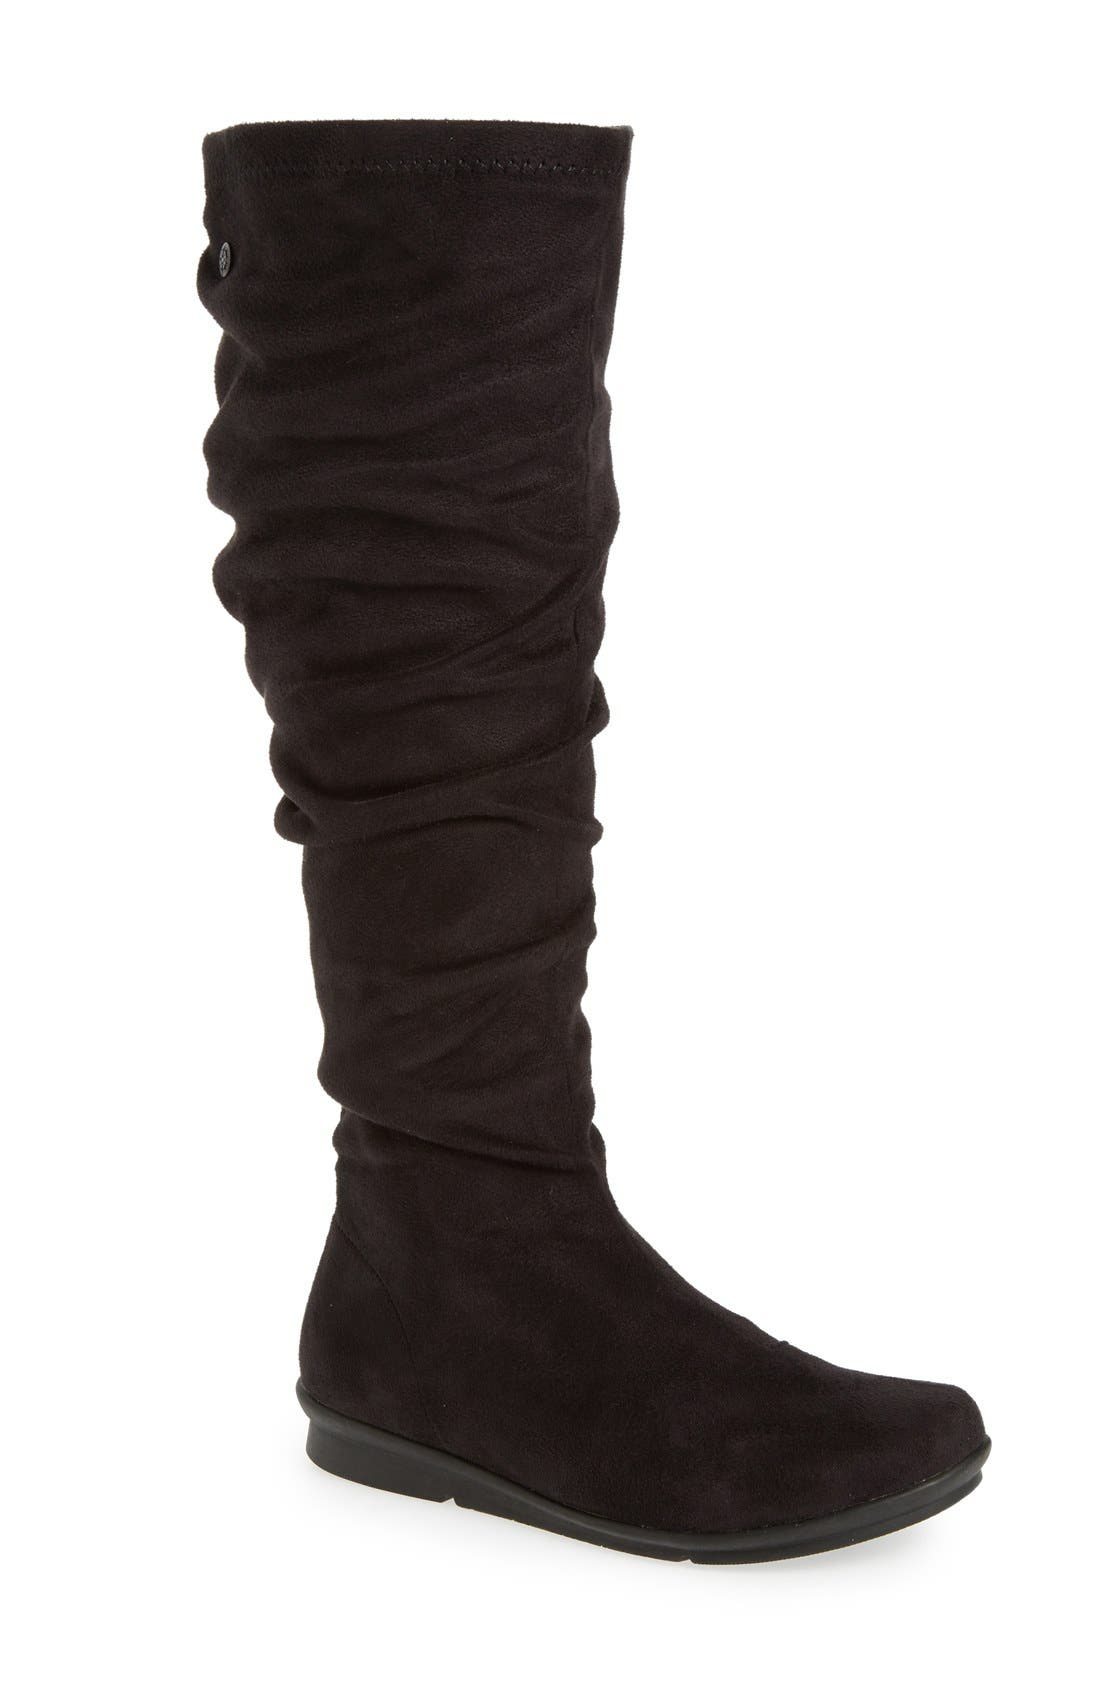 Main Image - Bussola 'Creta' Water Resistant Slouchy Knee-High Boot (Women)